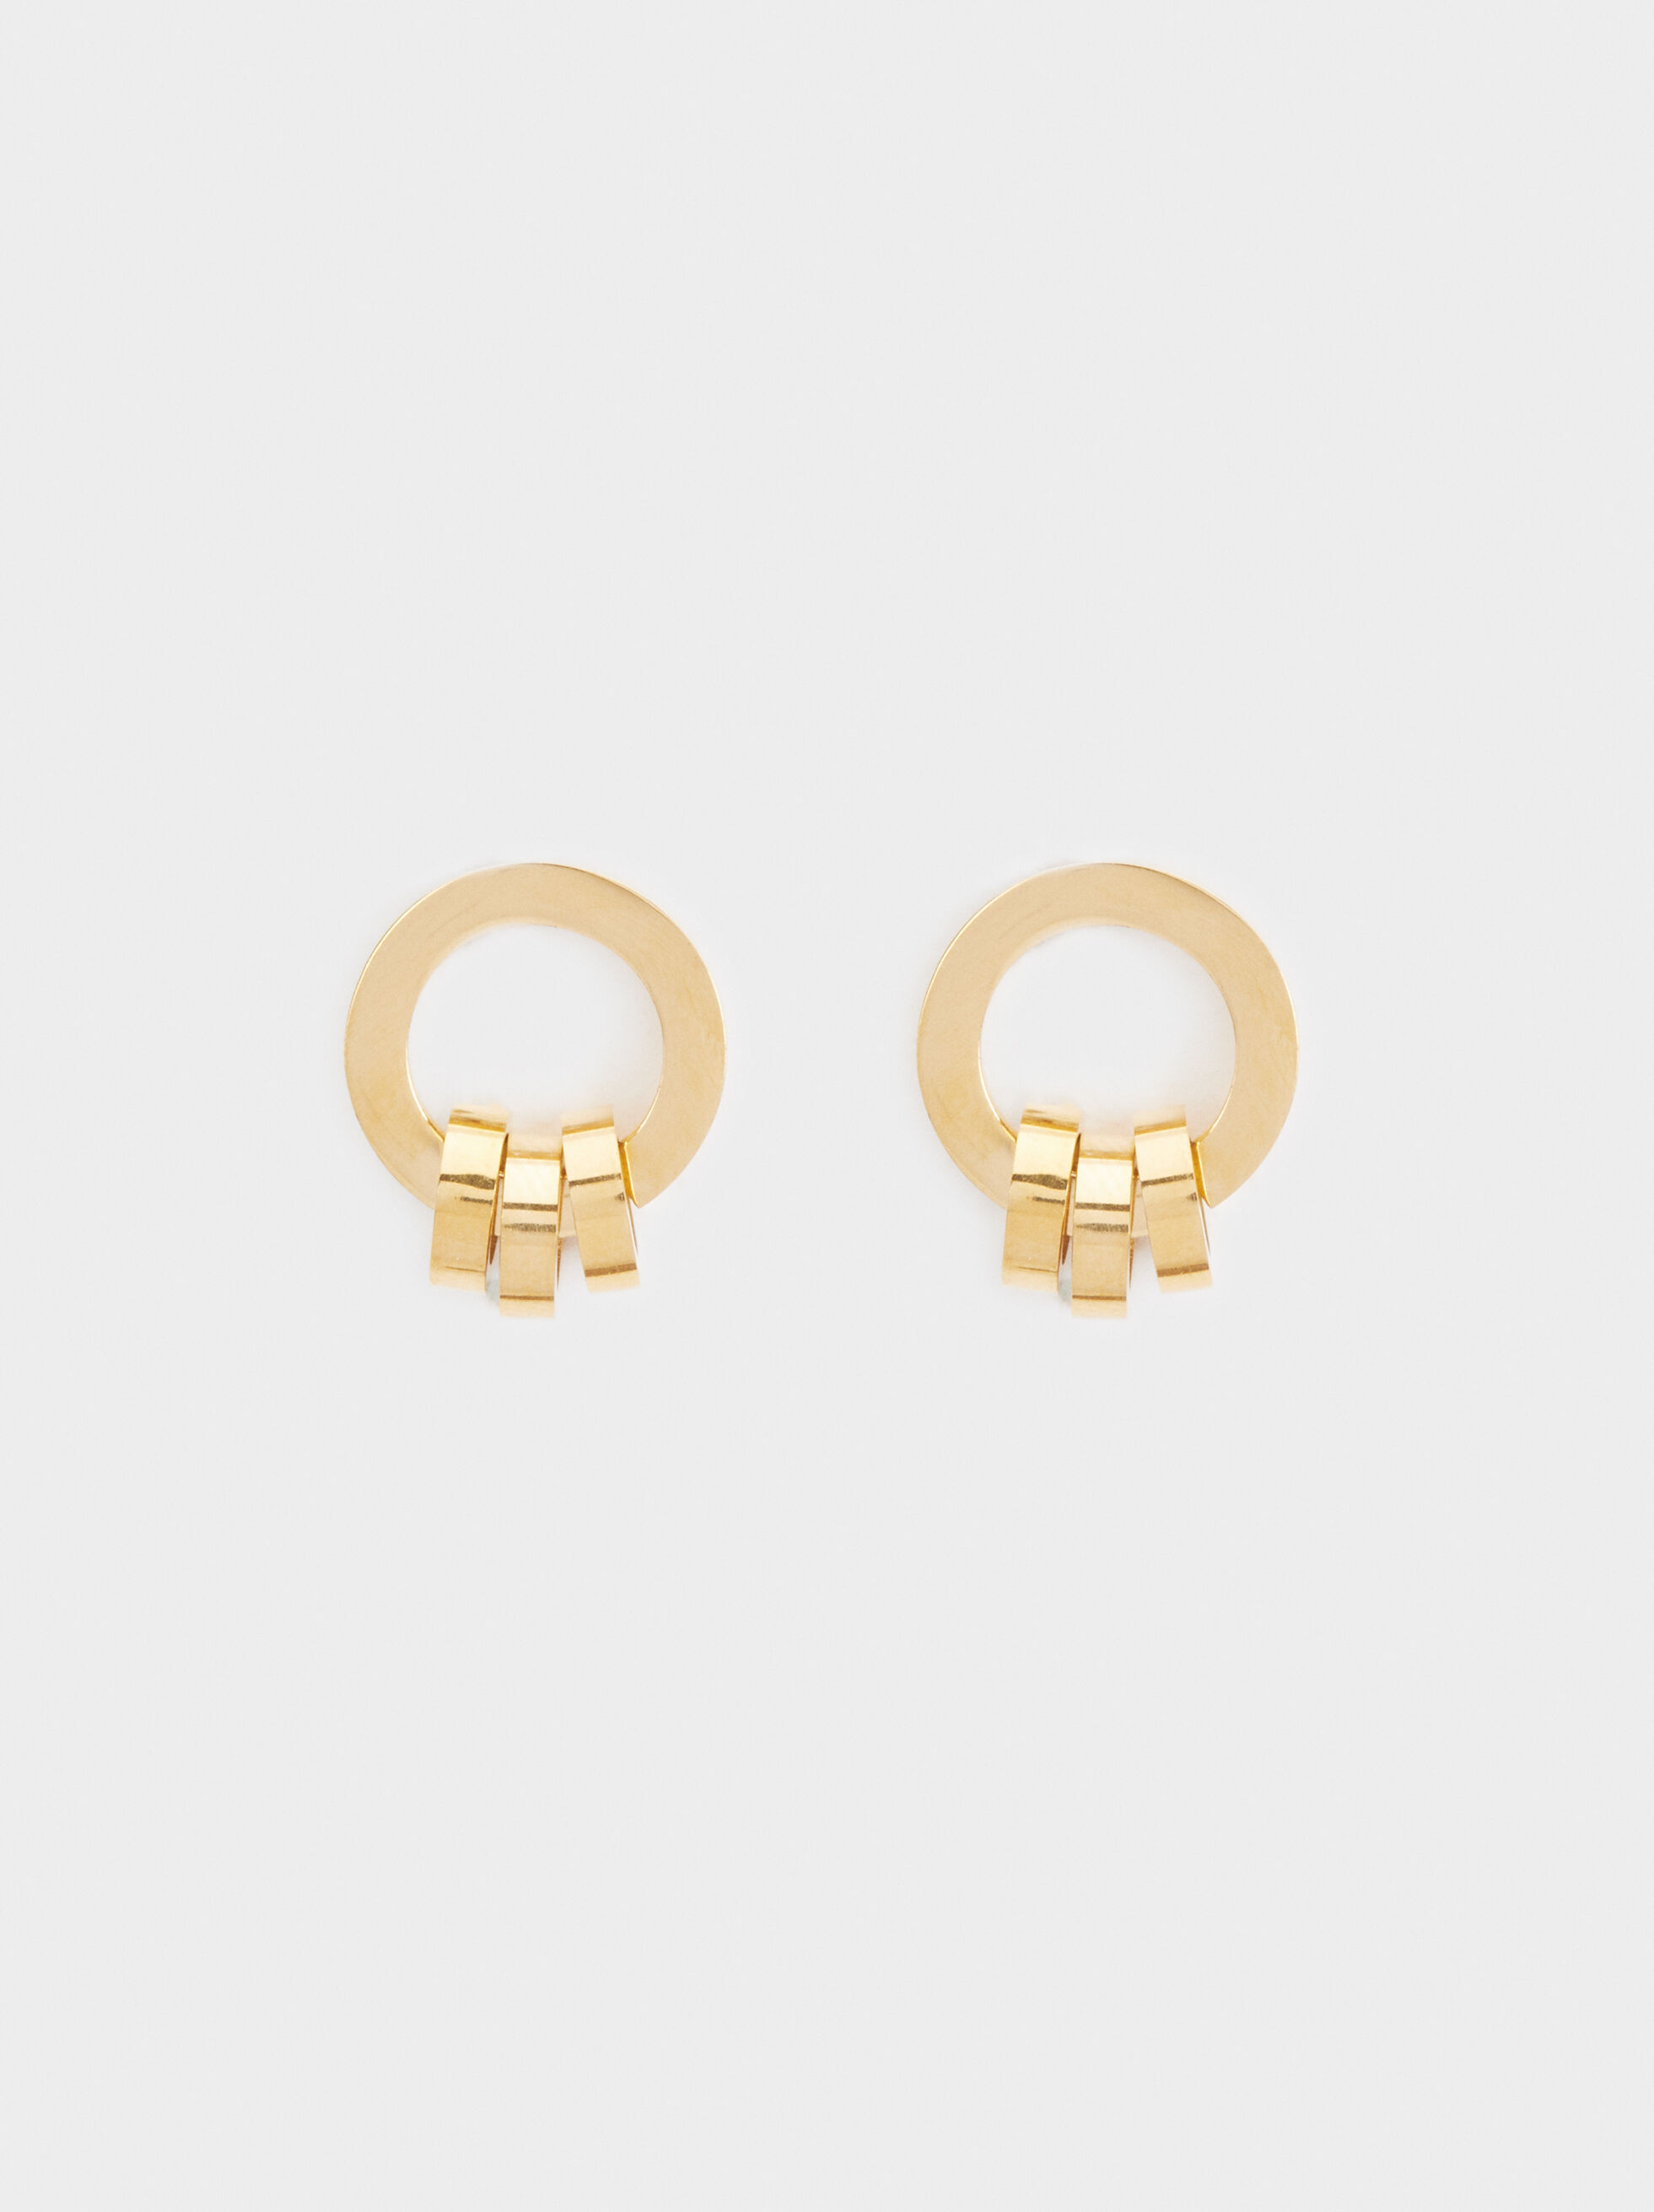 Short Steel Earrings, Golden, hi-res